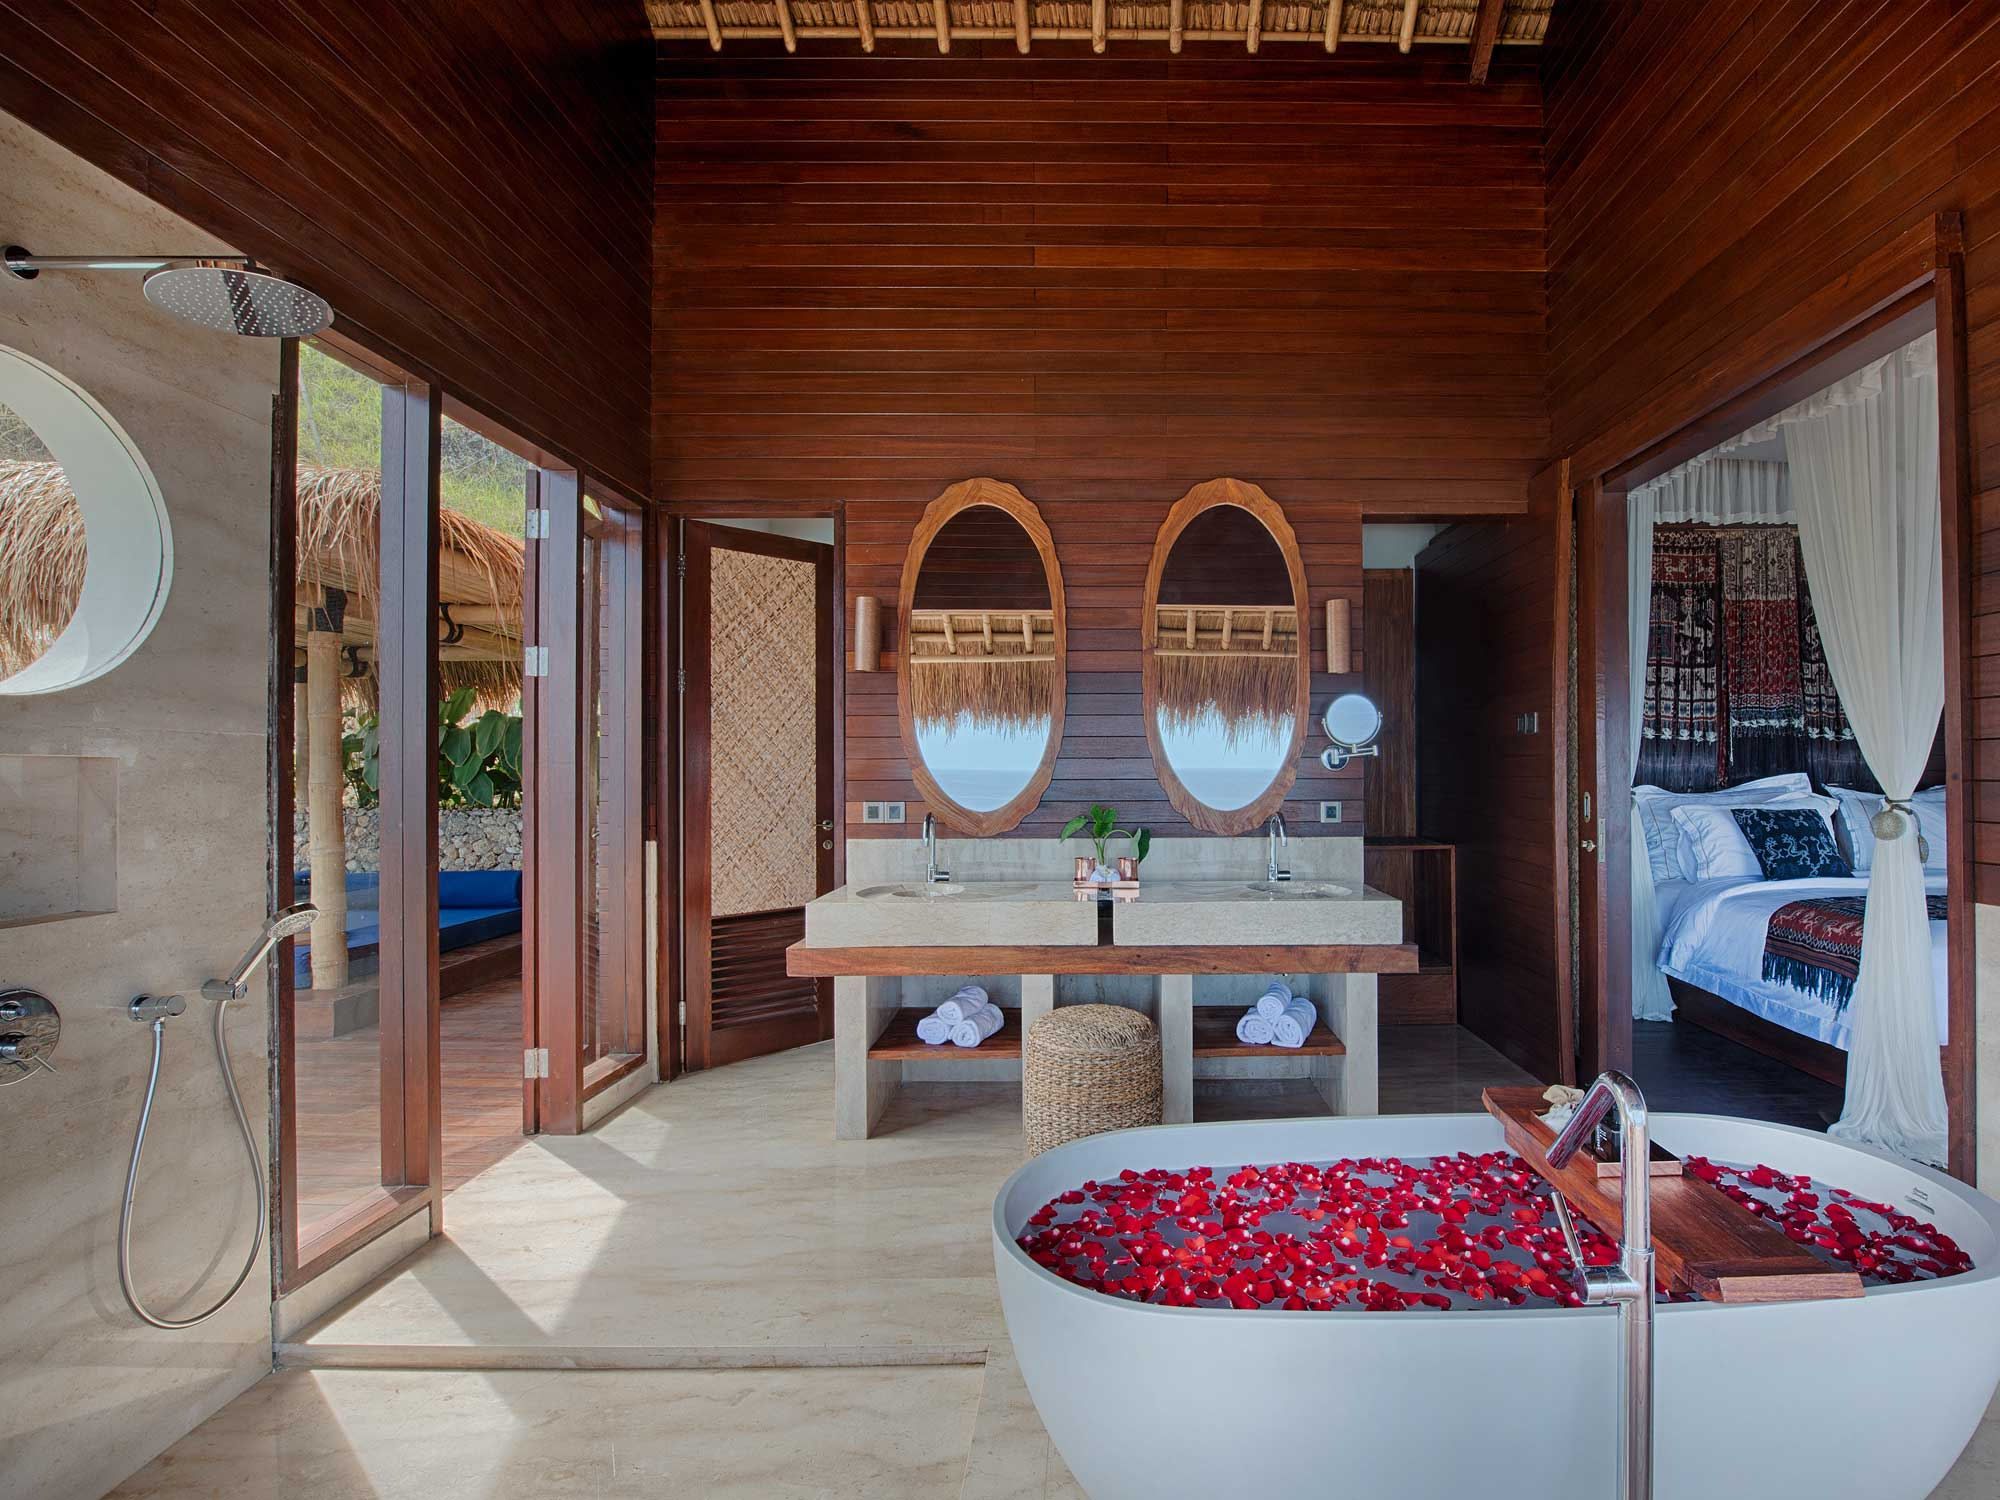 Lelewatu Sumba - Spa and Wellness